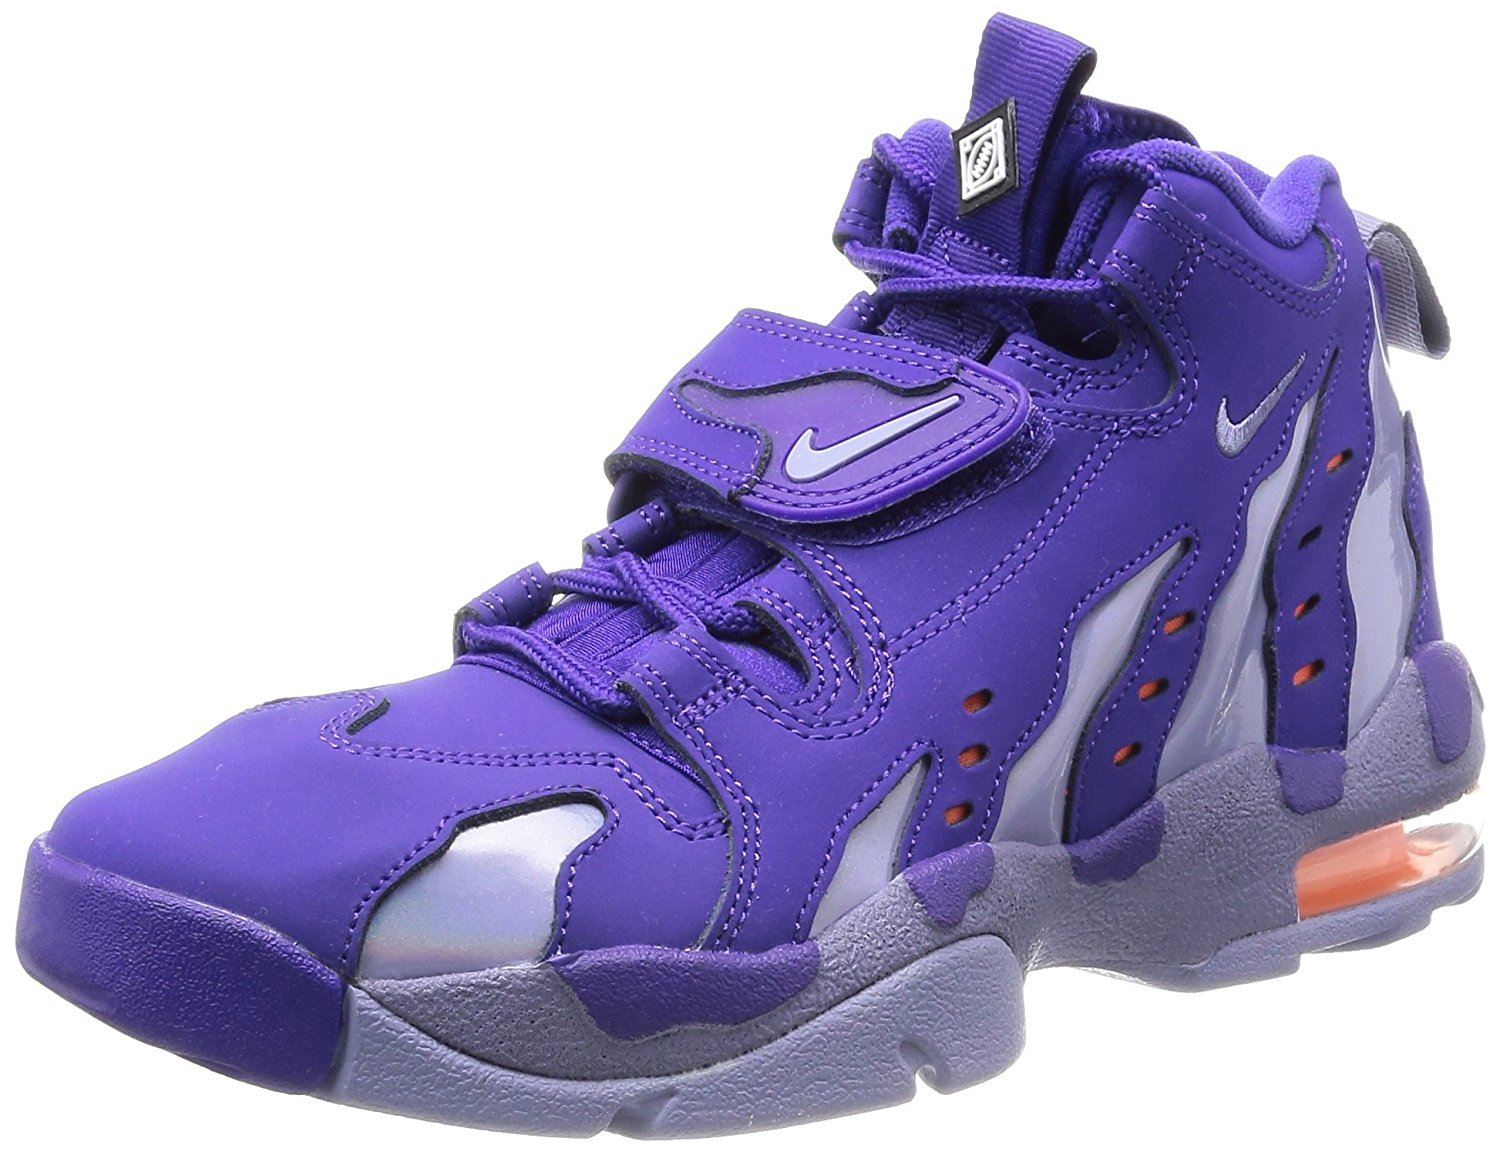 fbcdfe9c03 Buy NIKE AIR DT MAX 96 Mens Basketball Shoes Sneakers 316408-500 in ...